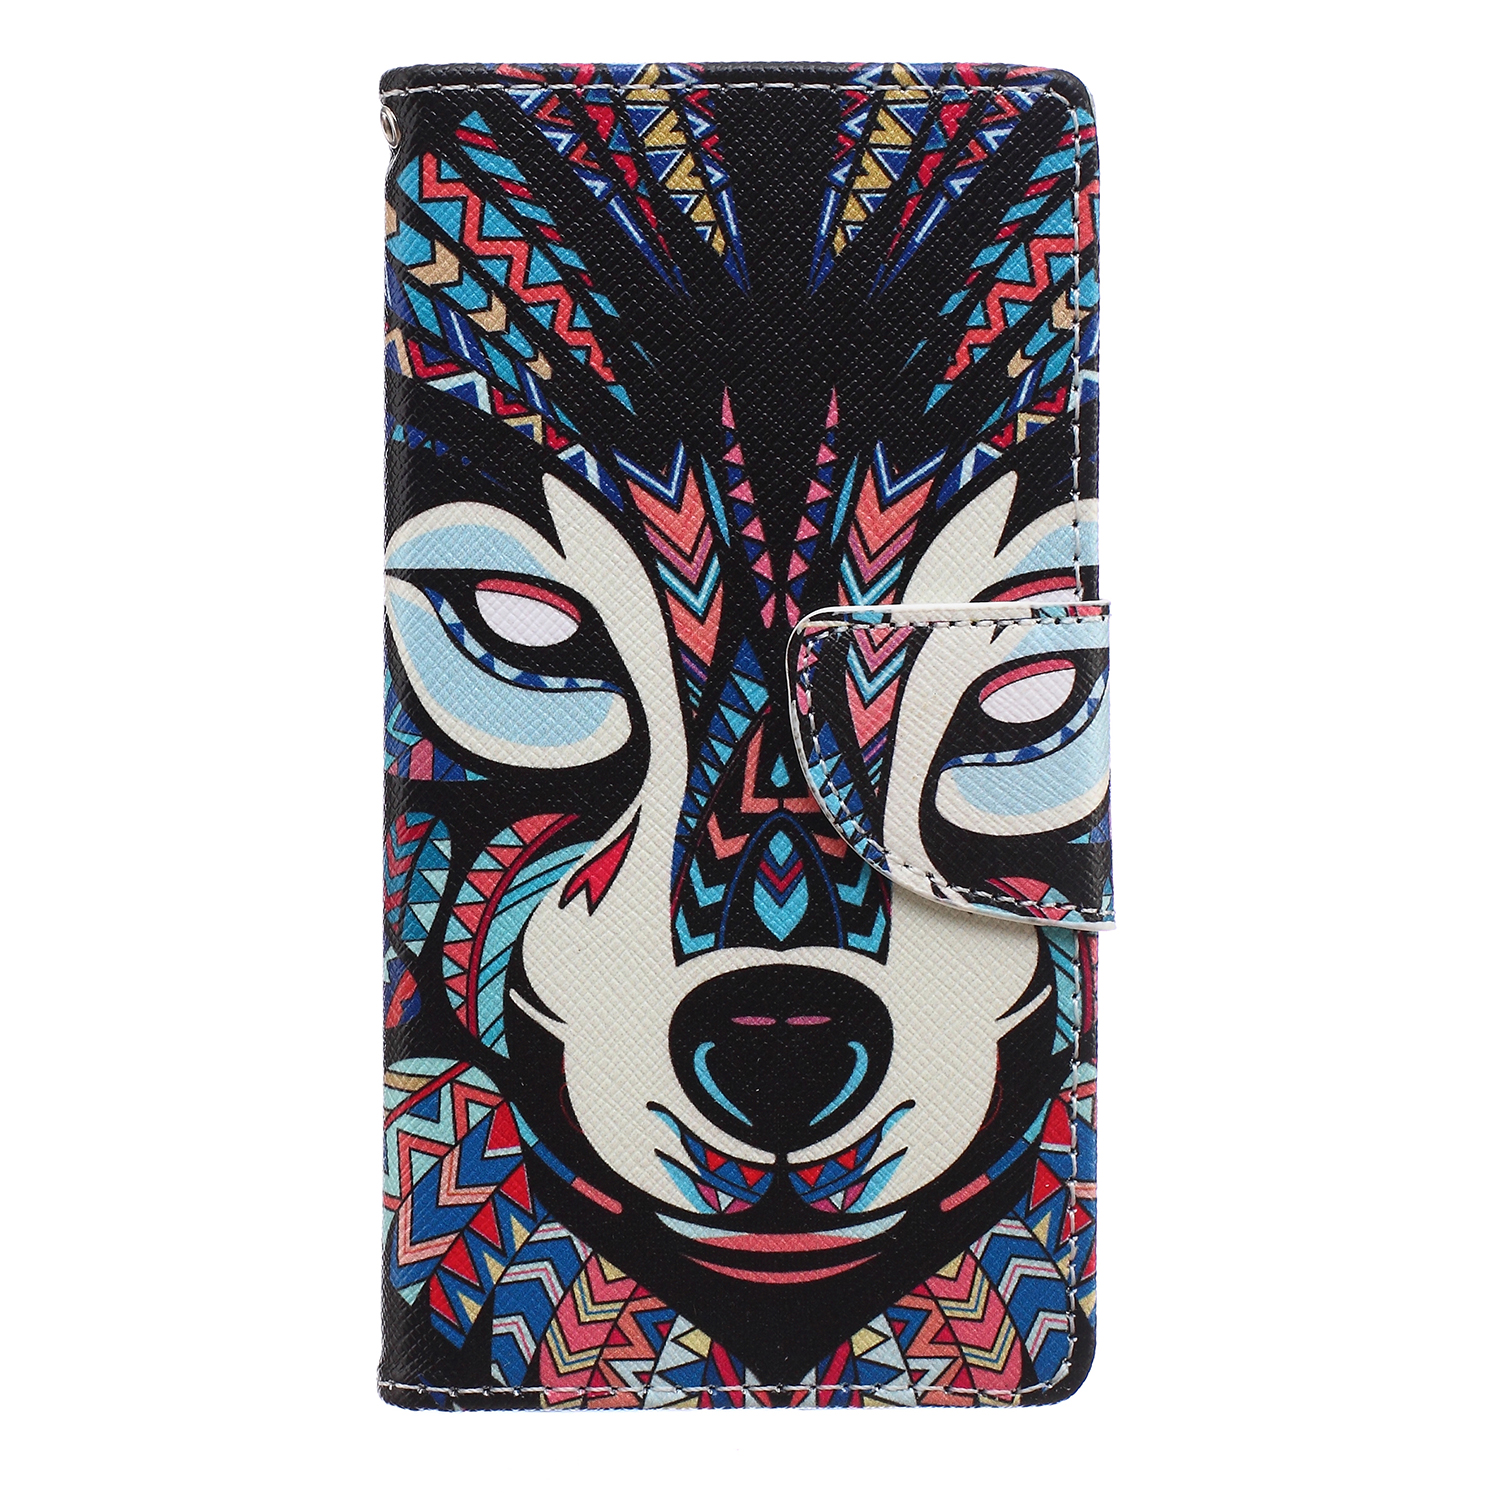 Flip Cover for Huawei P8 Lite P8Lite Leather Case ALE-L21 ALE-L23 ALE-L04 ALE-L02 Flip Phone Cases for Huawei ALE L21 L23 L04 L02 phone cases - intl